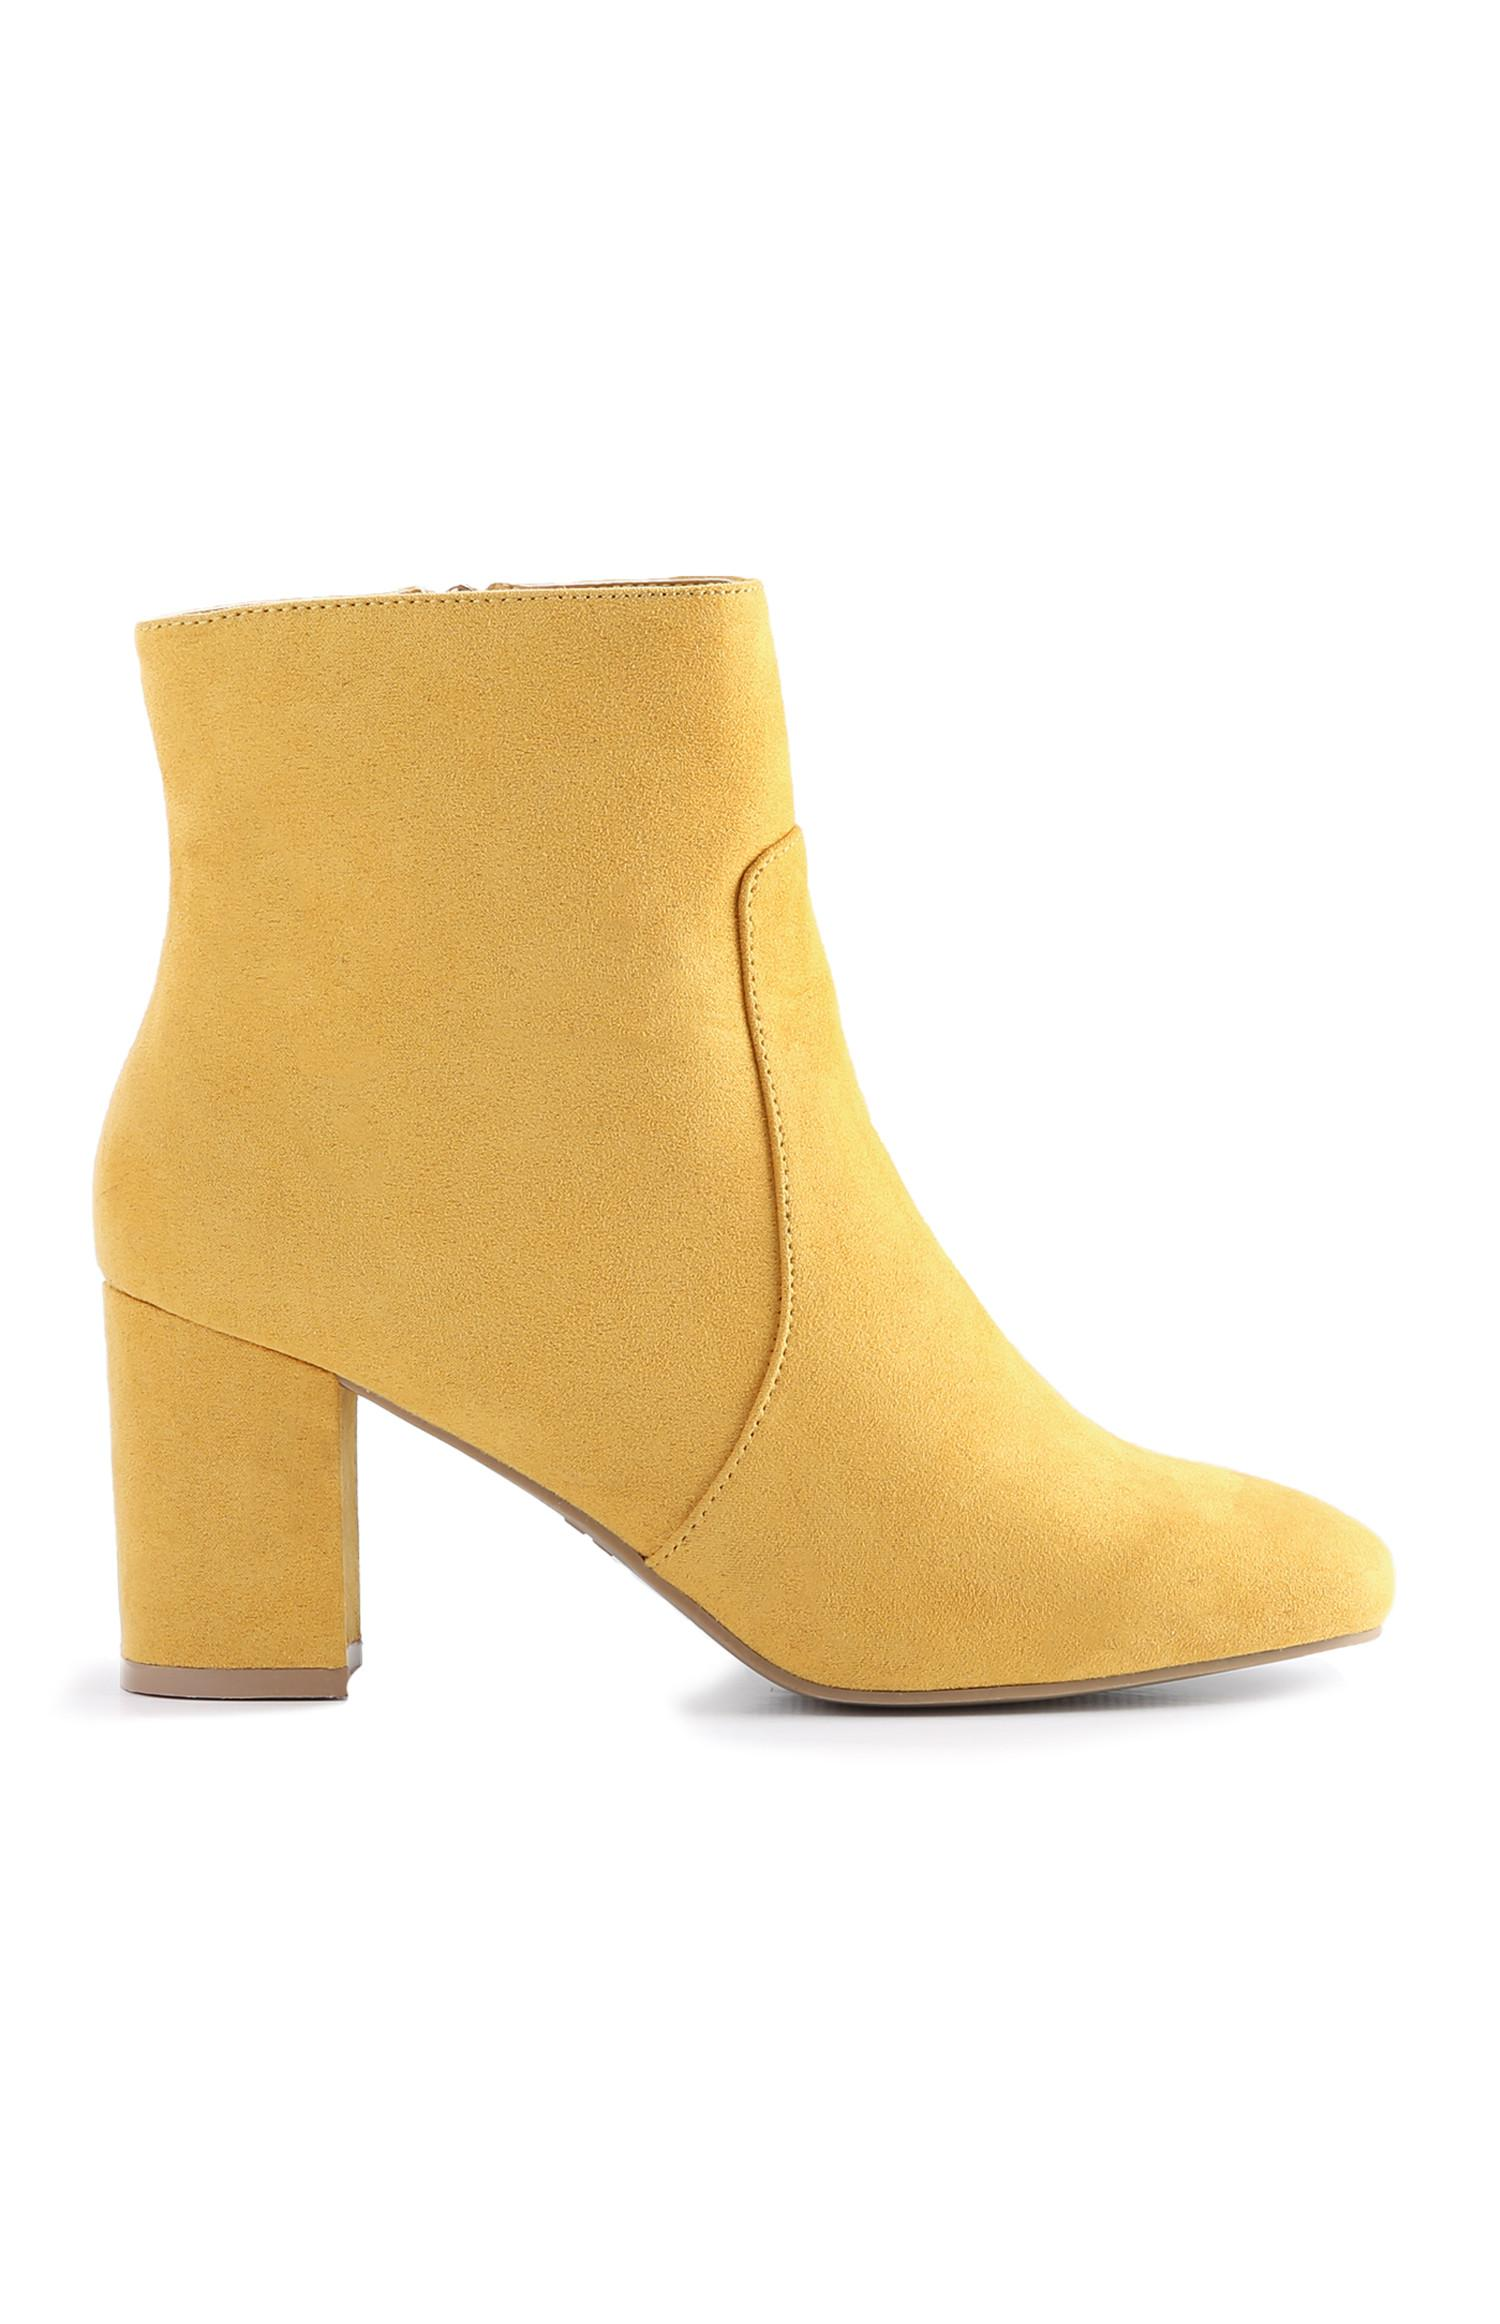 be6c1951c08 Yellow Block Heel Boot | Boots | Shoes & Boots | Womens | Categories ...